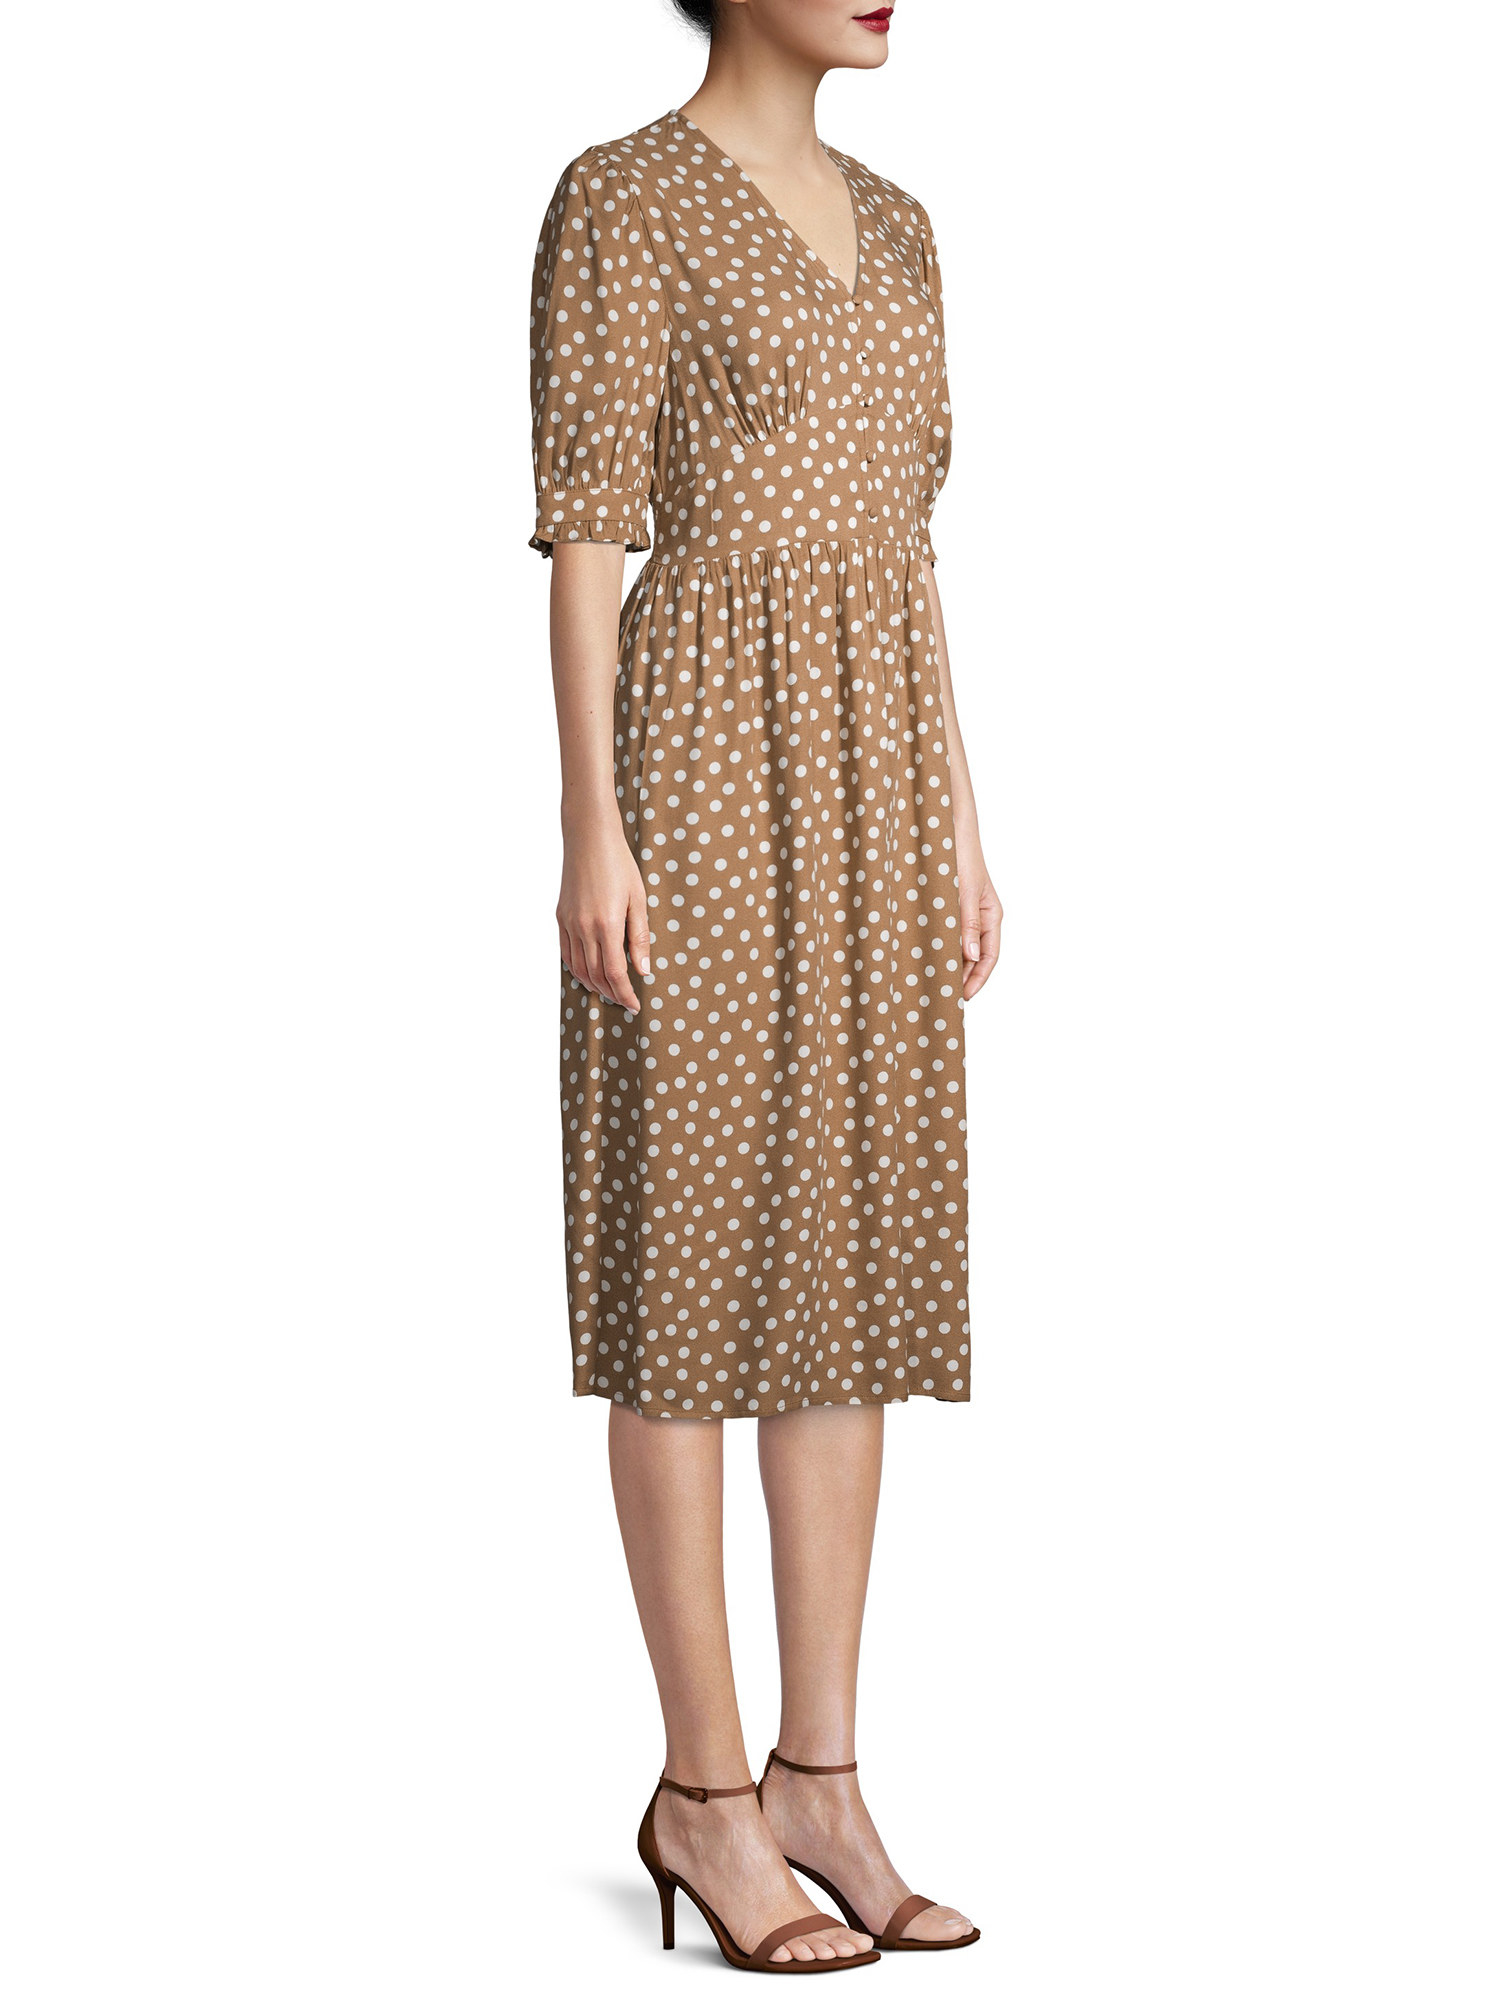 a model in the tan dress with white polka dots